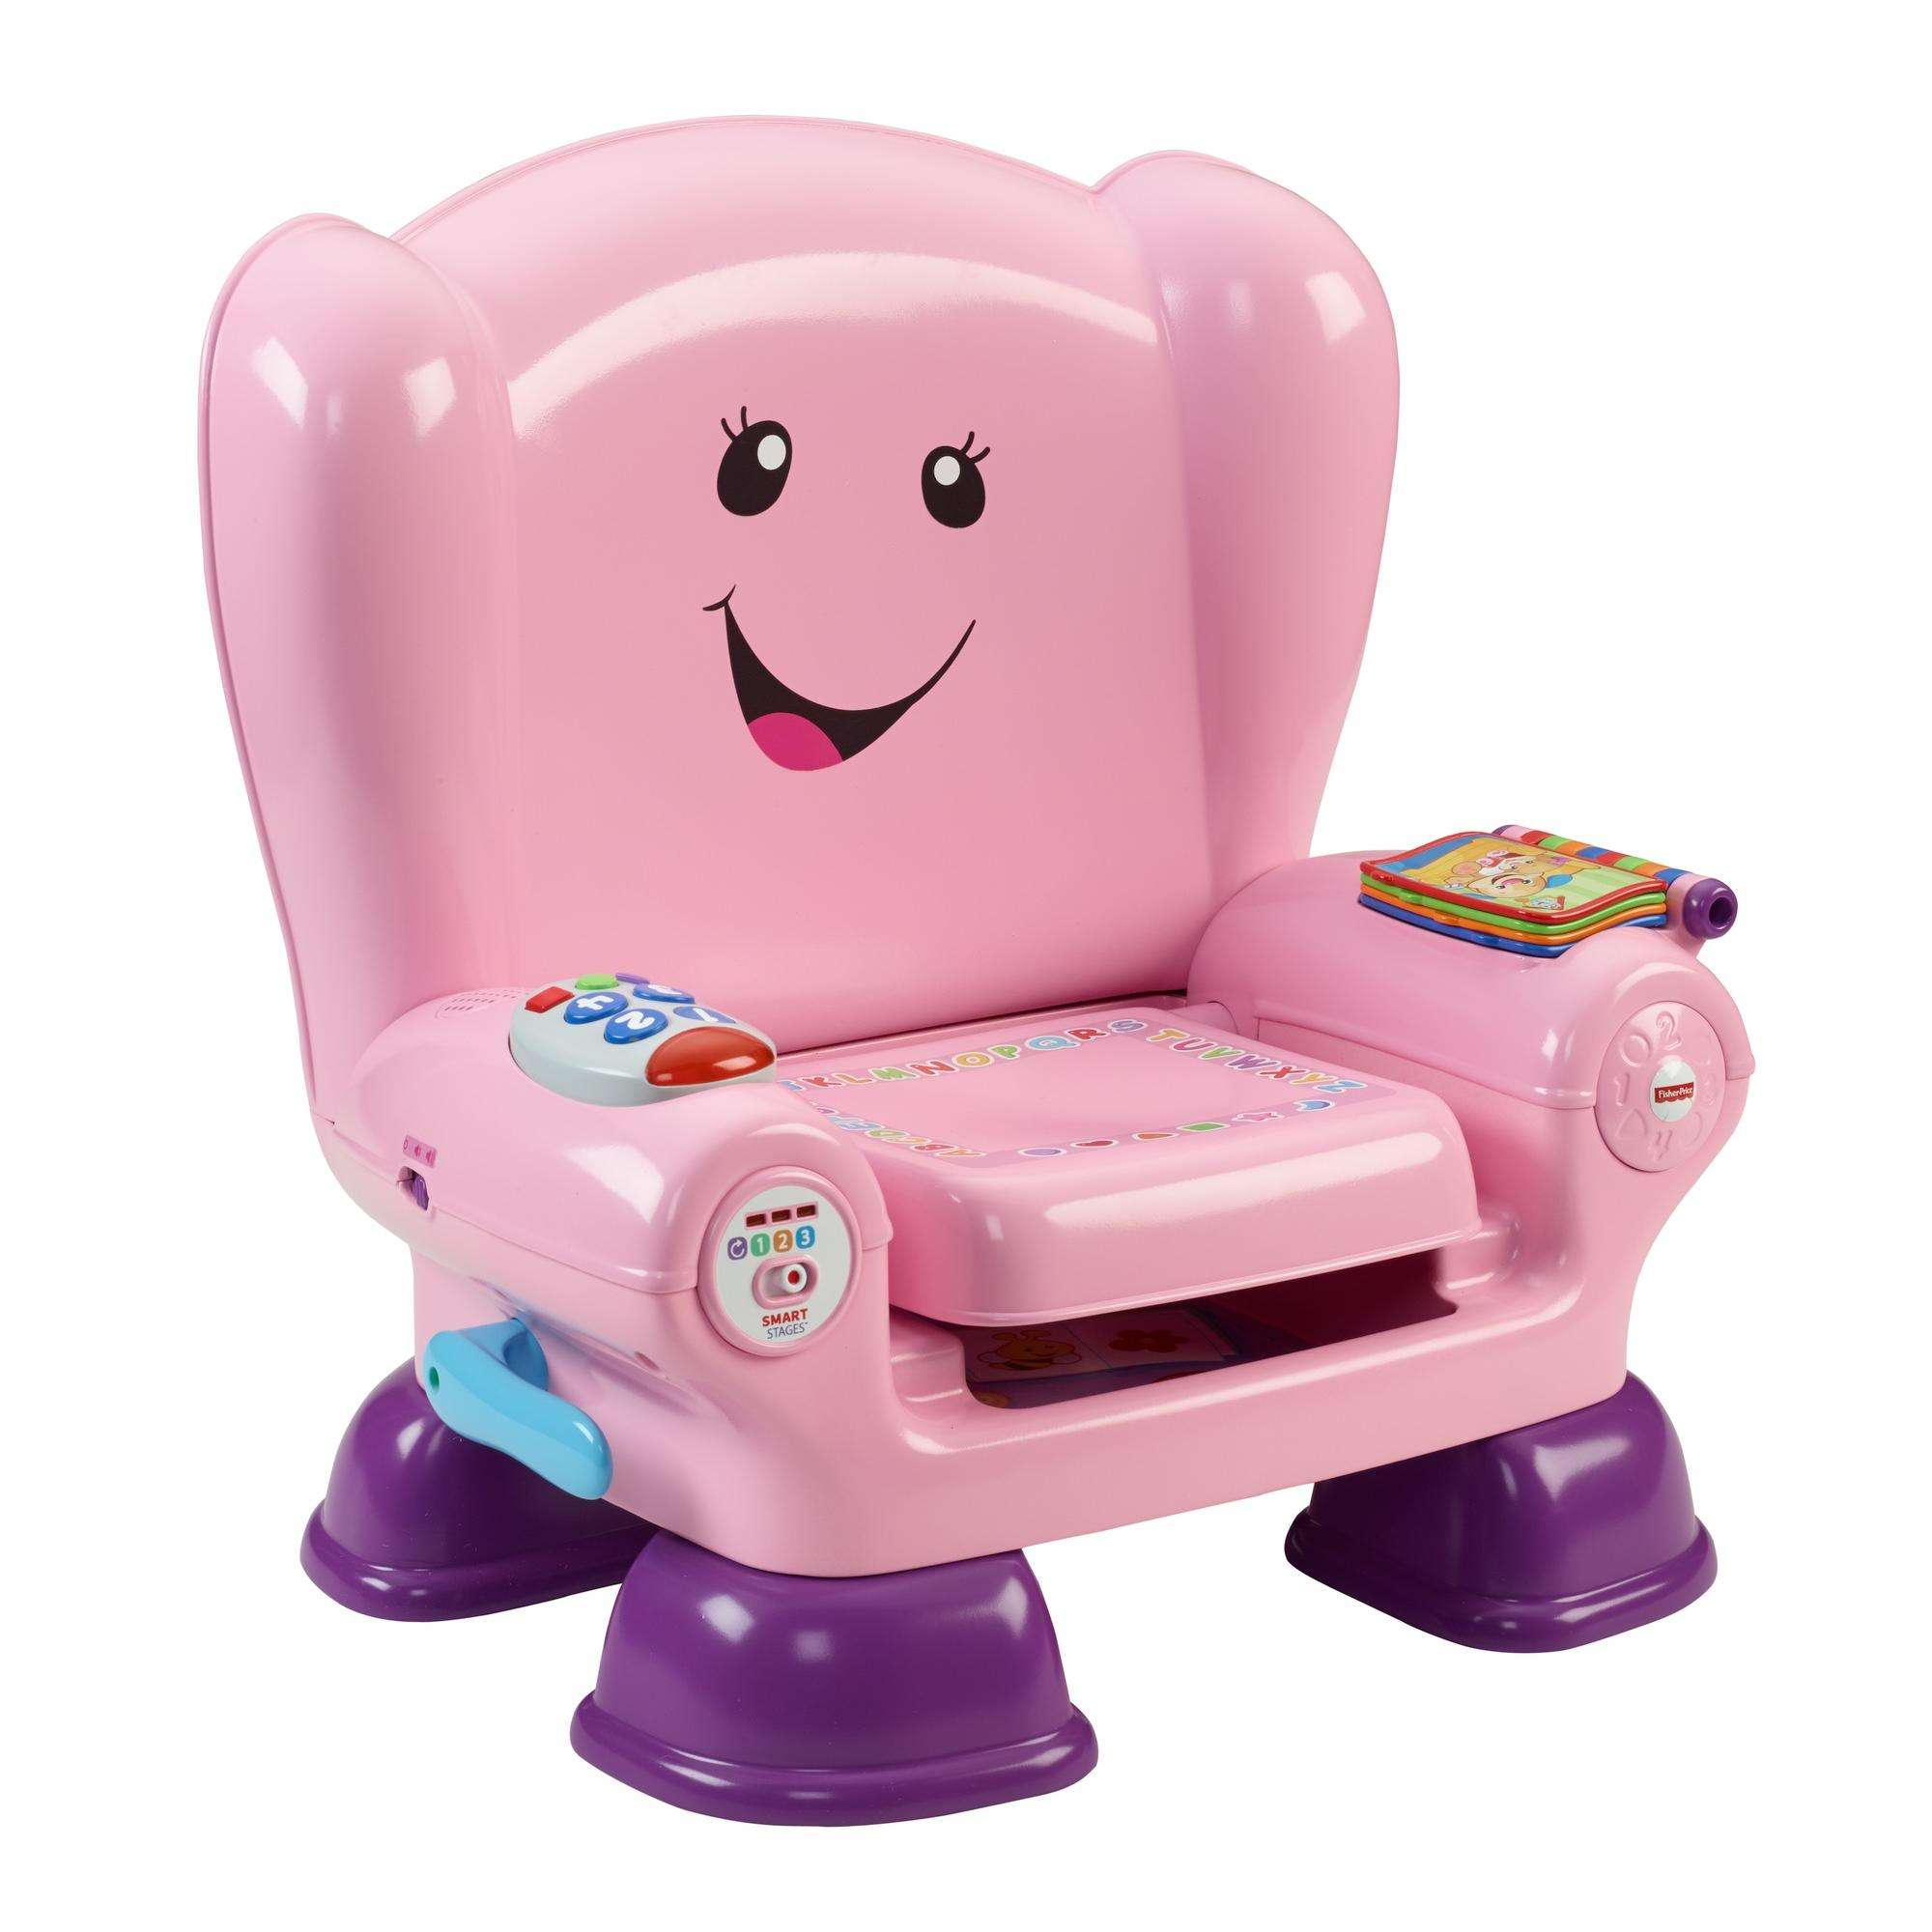 Laugh and learn stages chair